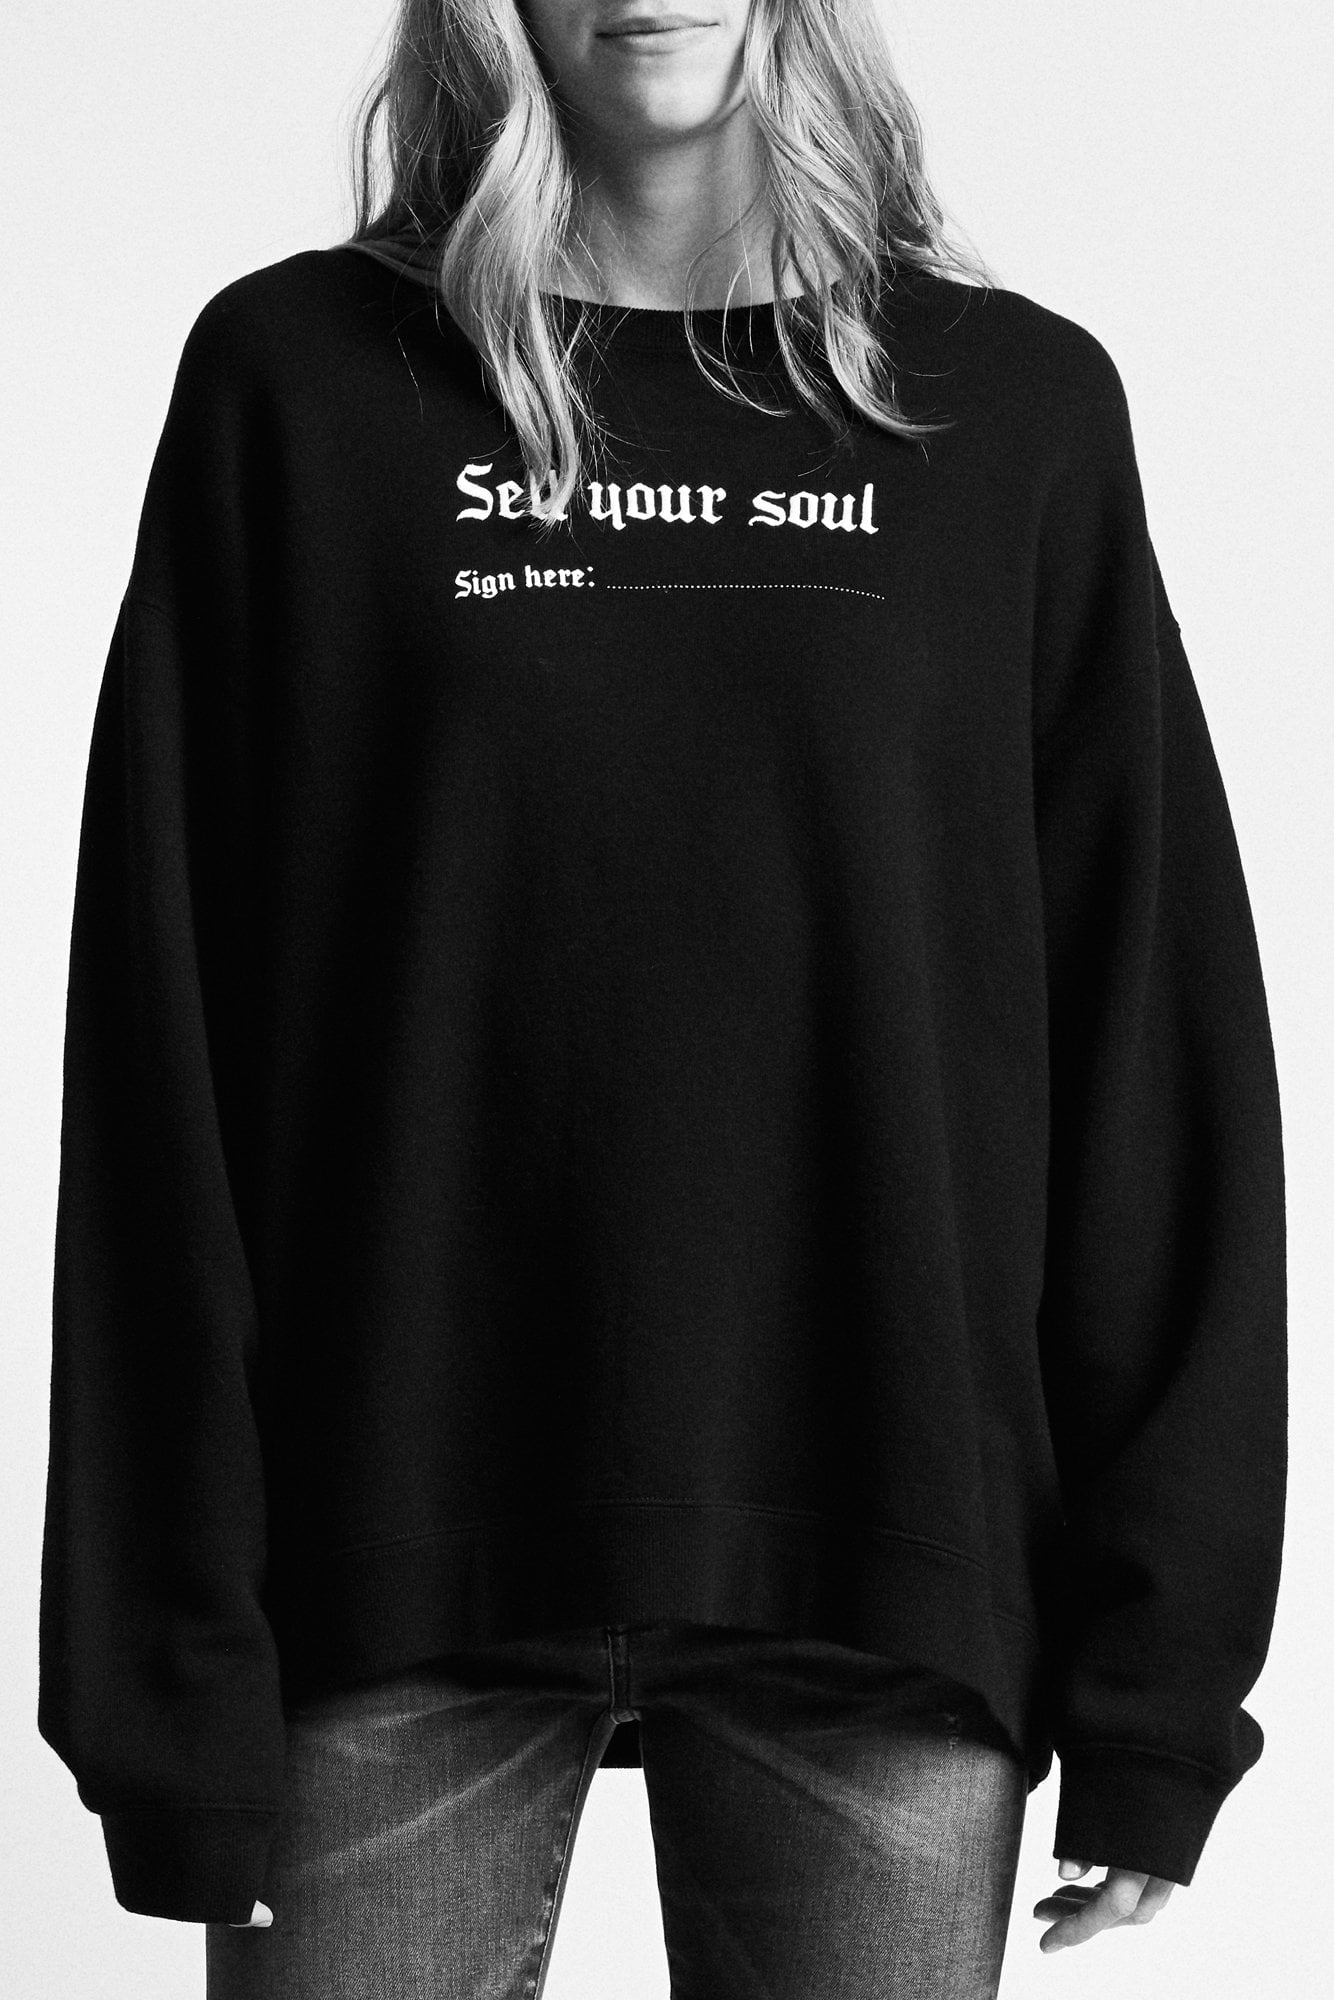 Sell Your Soul Sweatshirt - Black